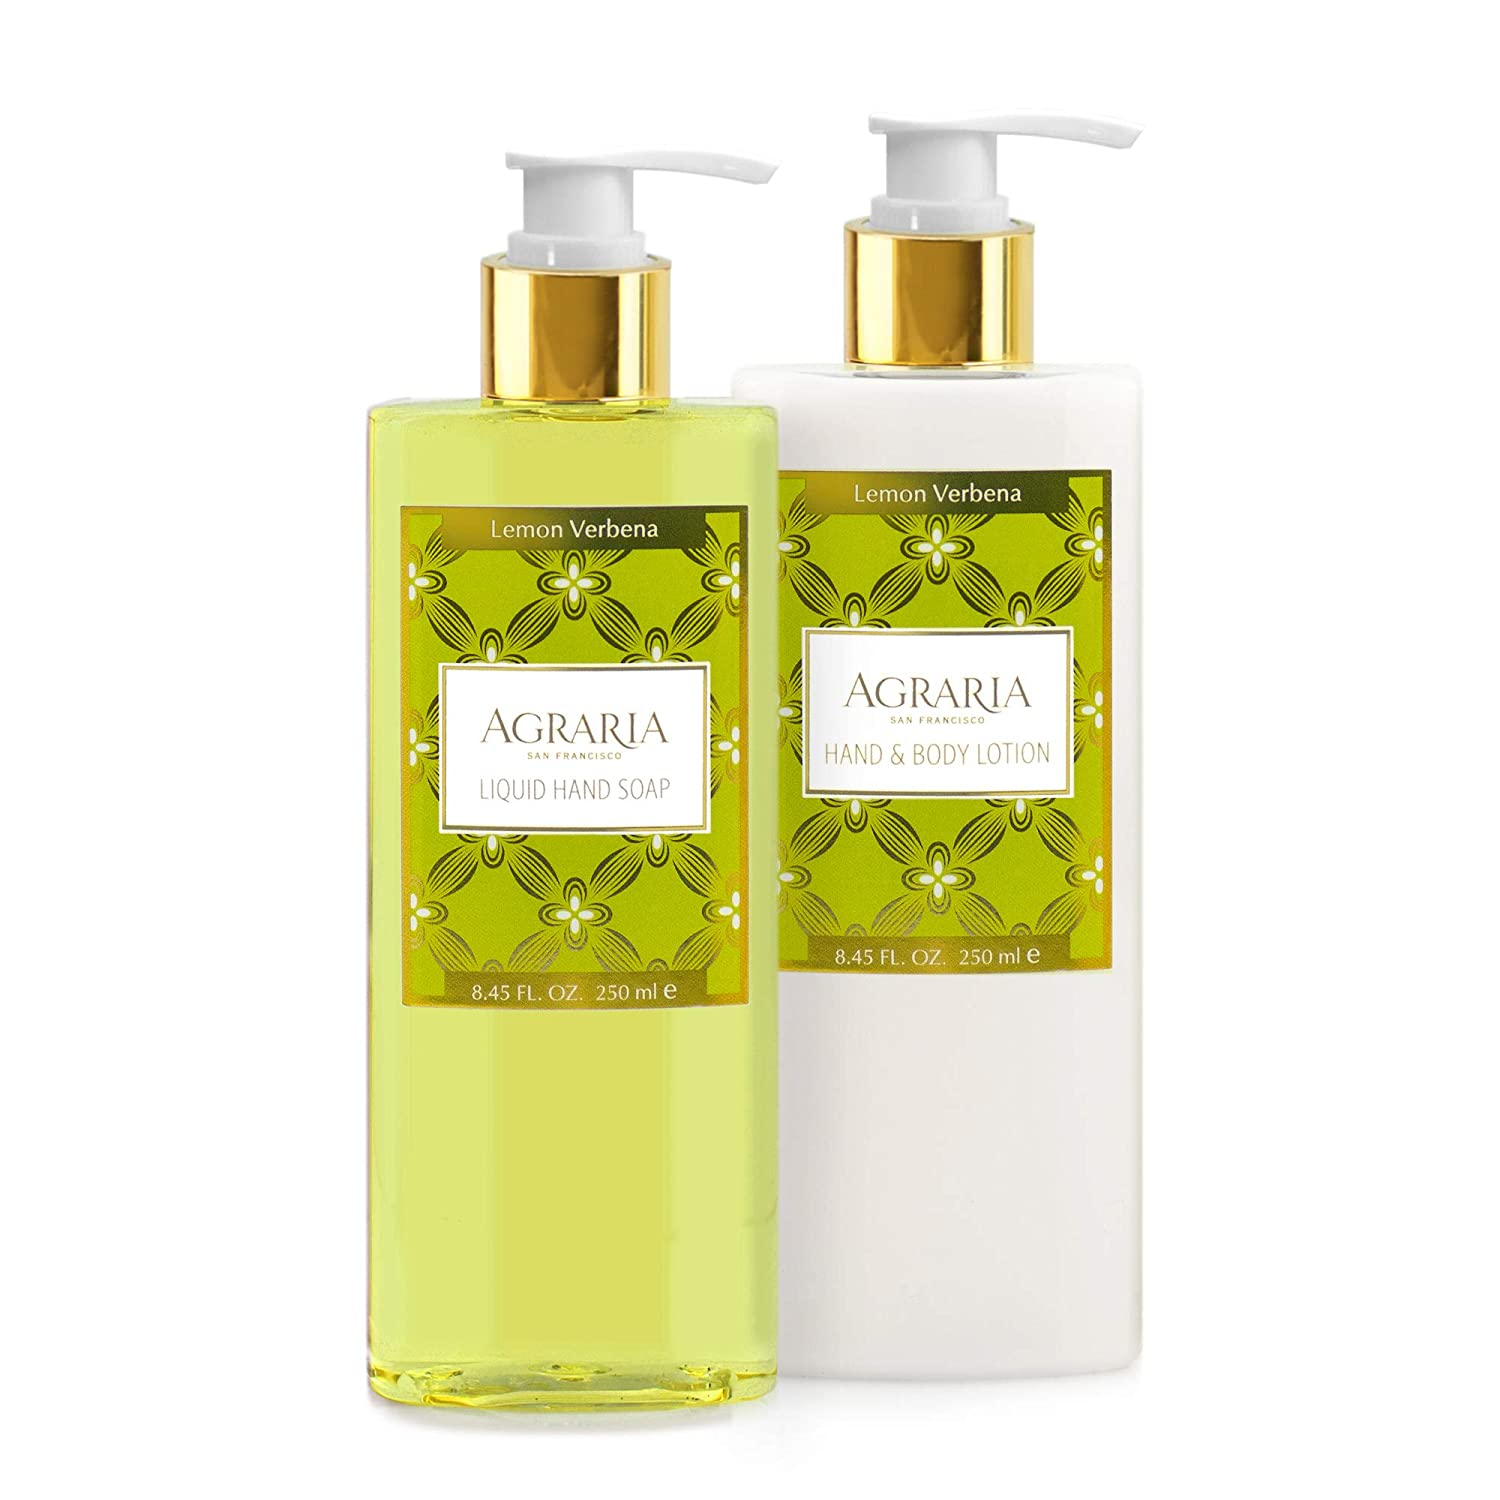 AGRARIA Lemon Verbena Luxury Lotion and Liquid Hand Soap Duo